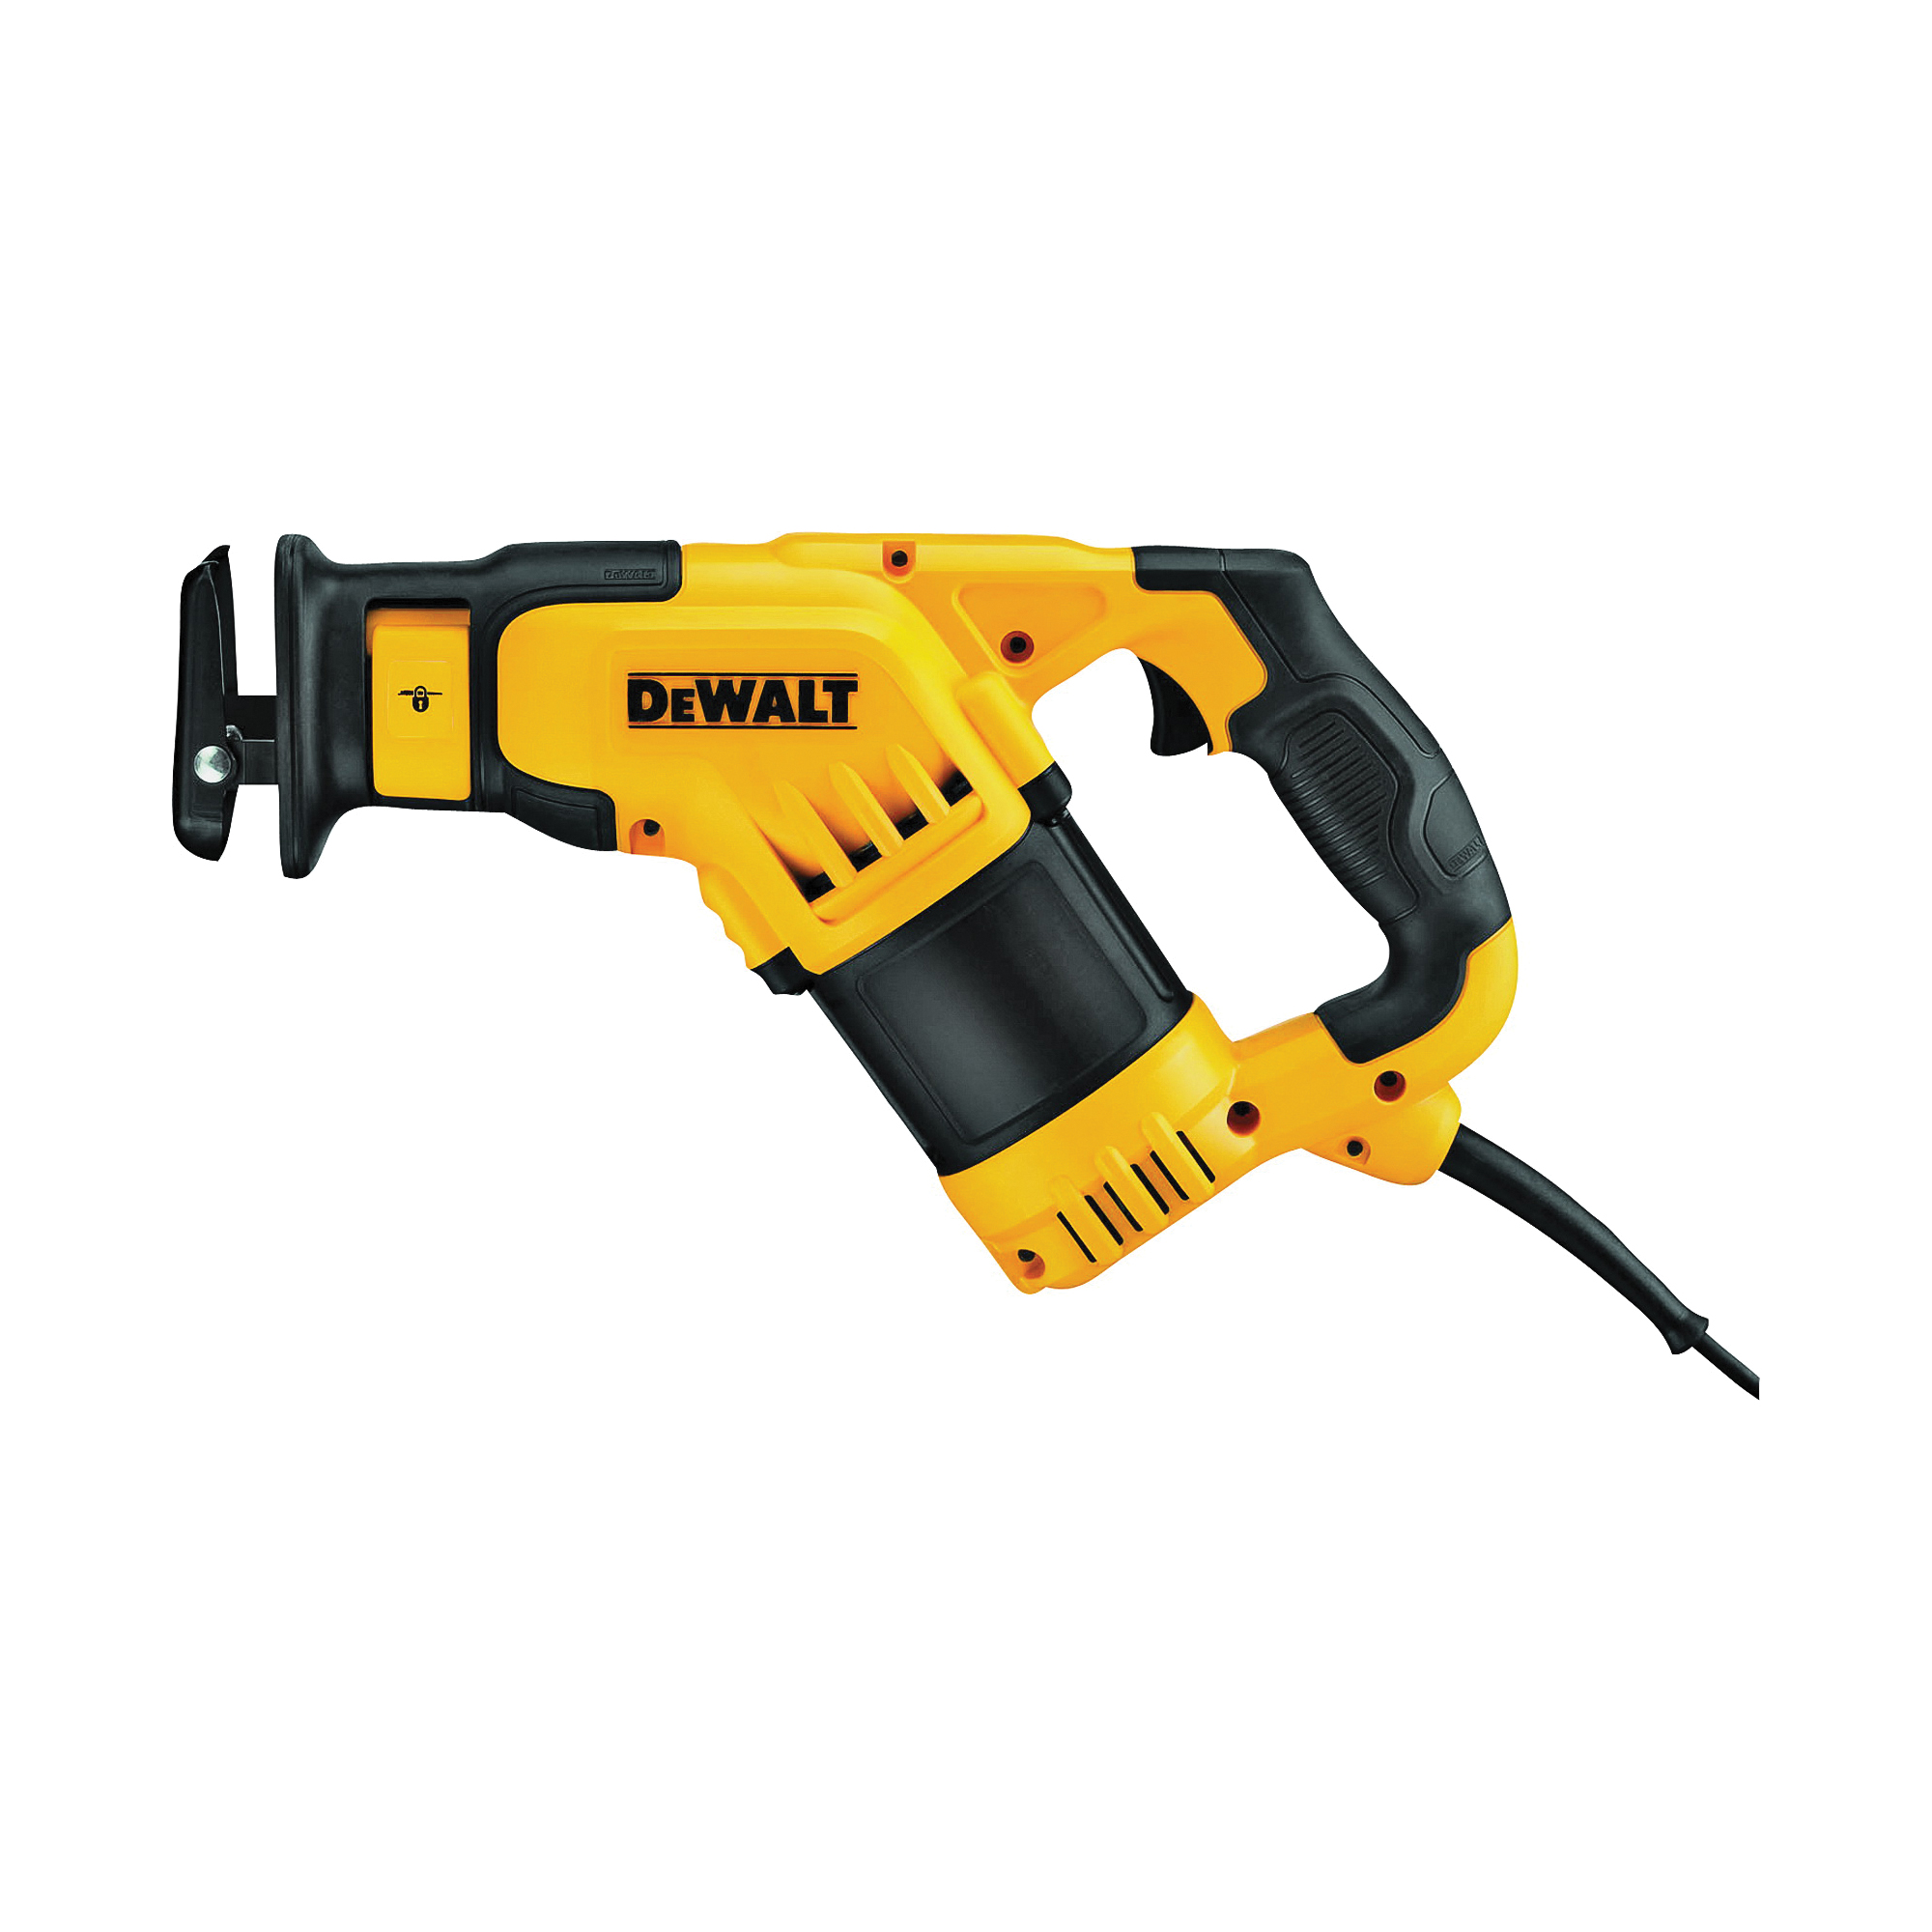 Picture of DeWALT DWE357 Reciprocating Saw, 120 V, 12 A, 1-1/8 in L Stroke, 3000 spm SPM